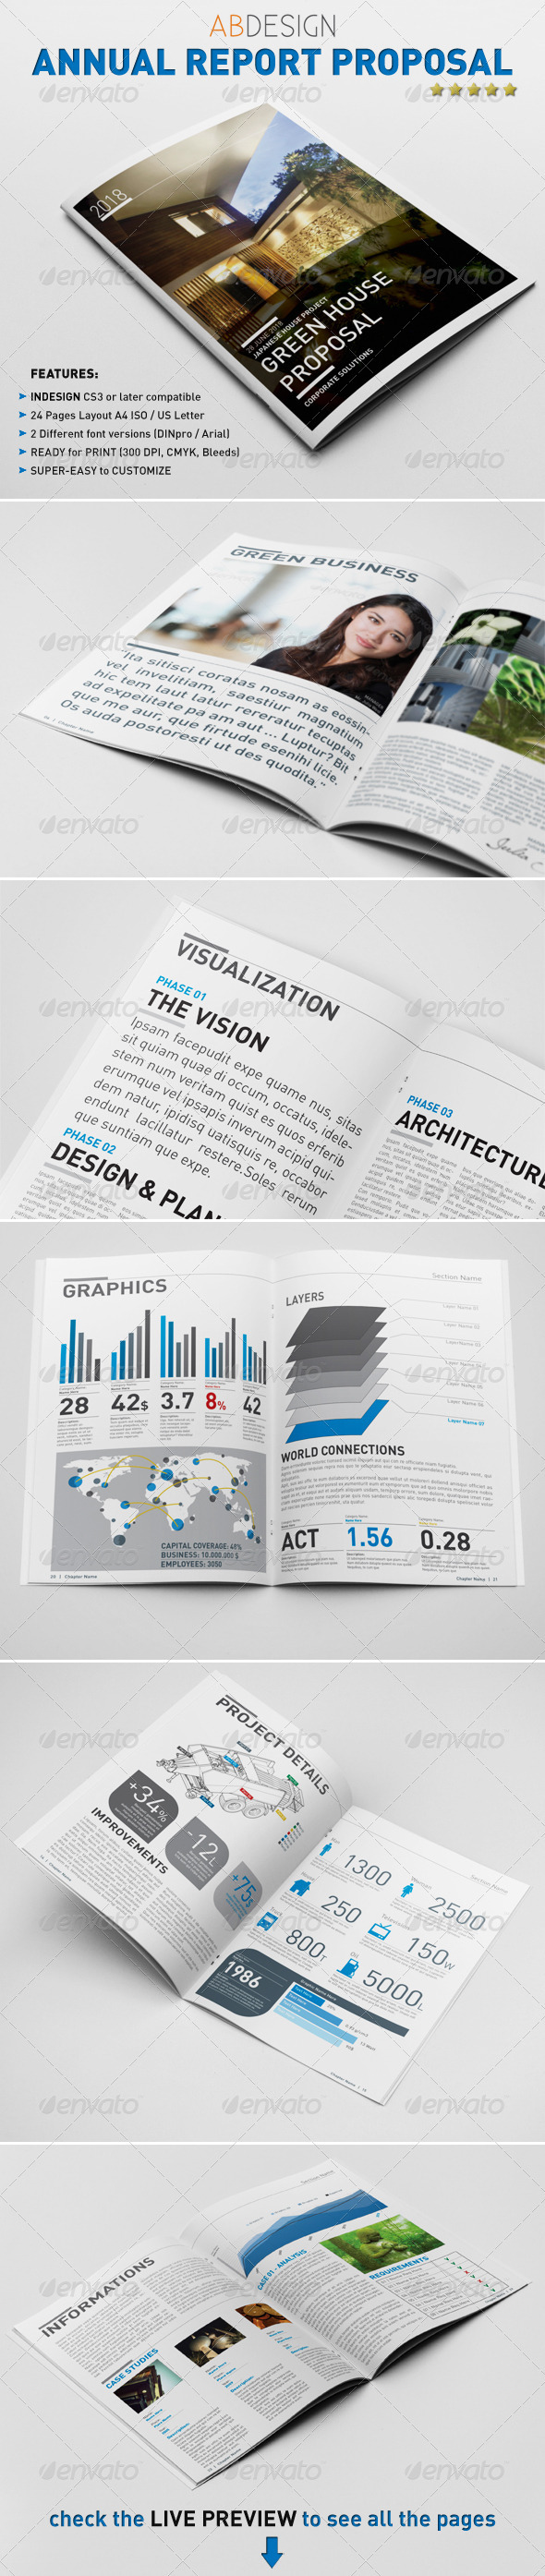 Product Sales Proposal Template Annual Report Proposal Template  Proposal Templates Annual Reports .